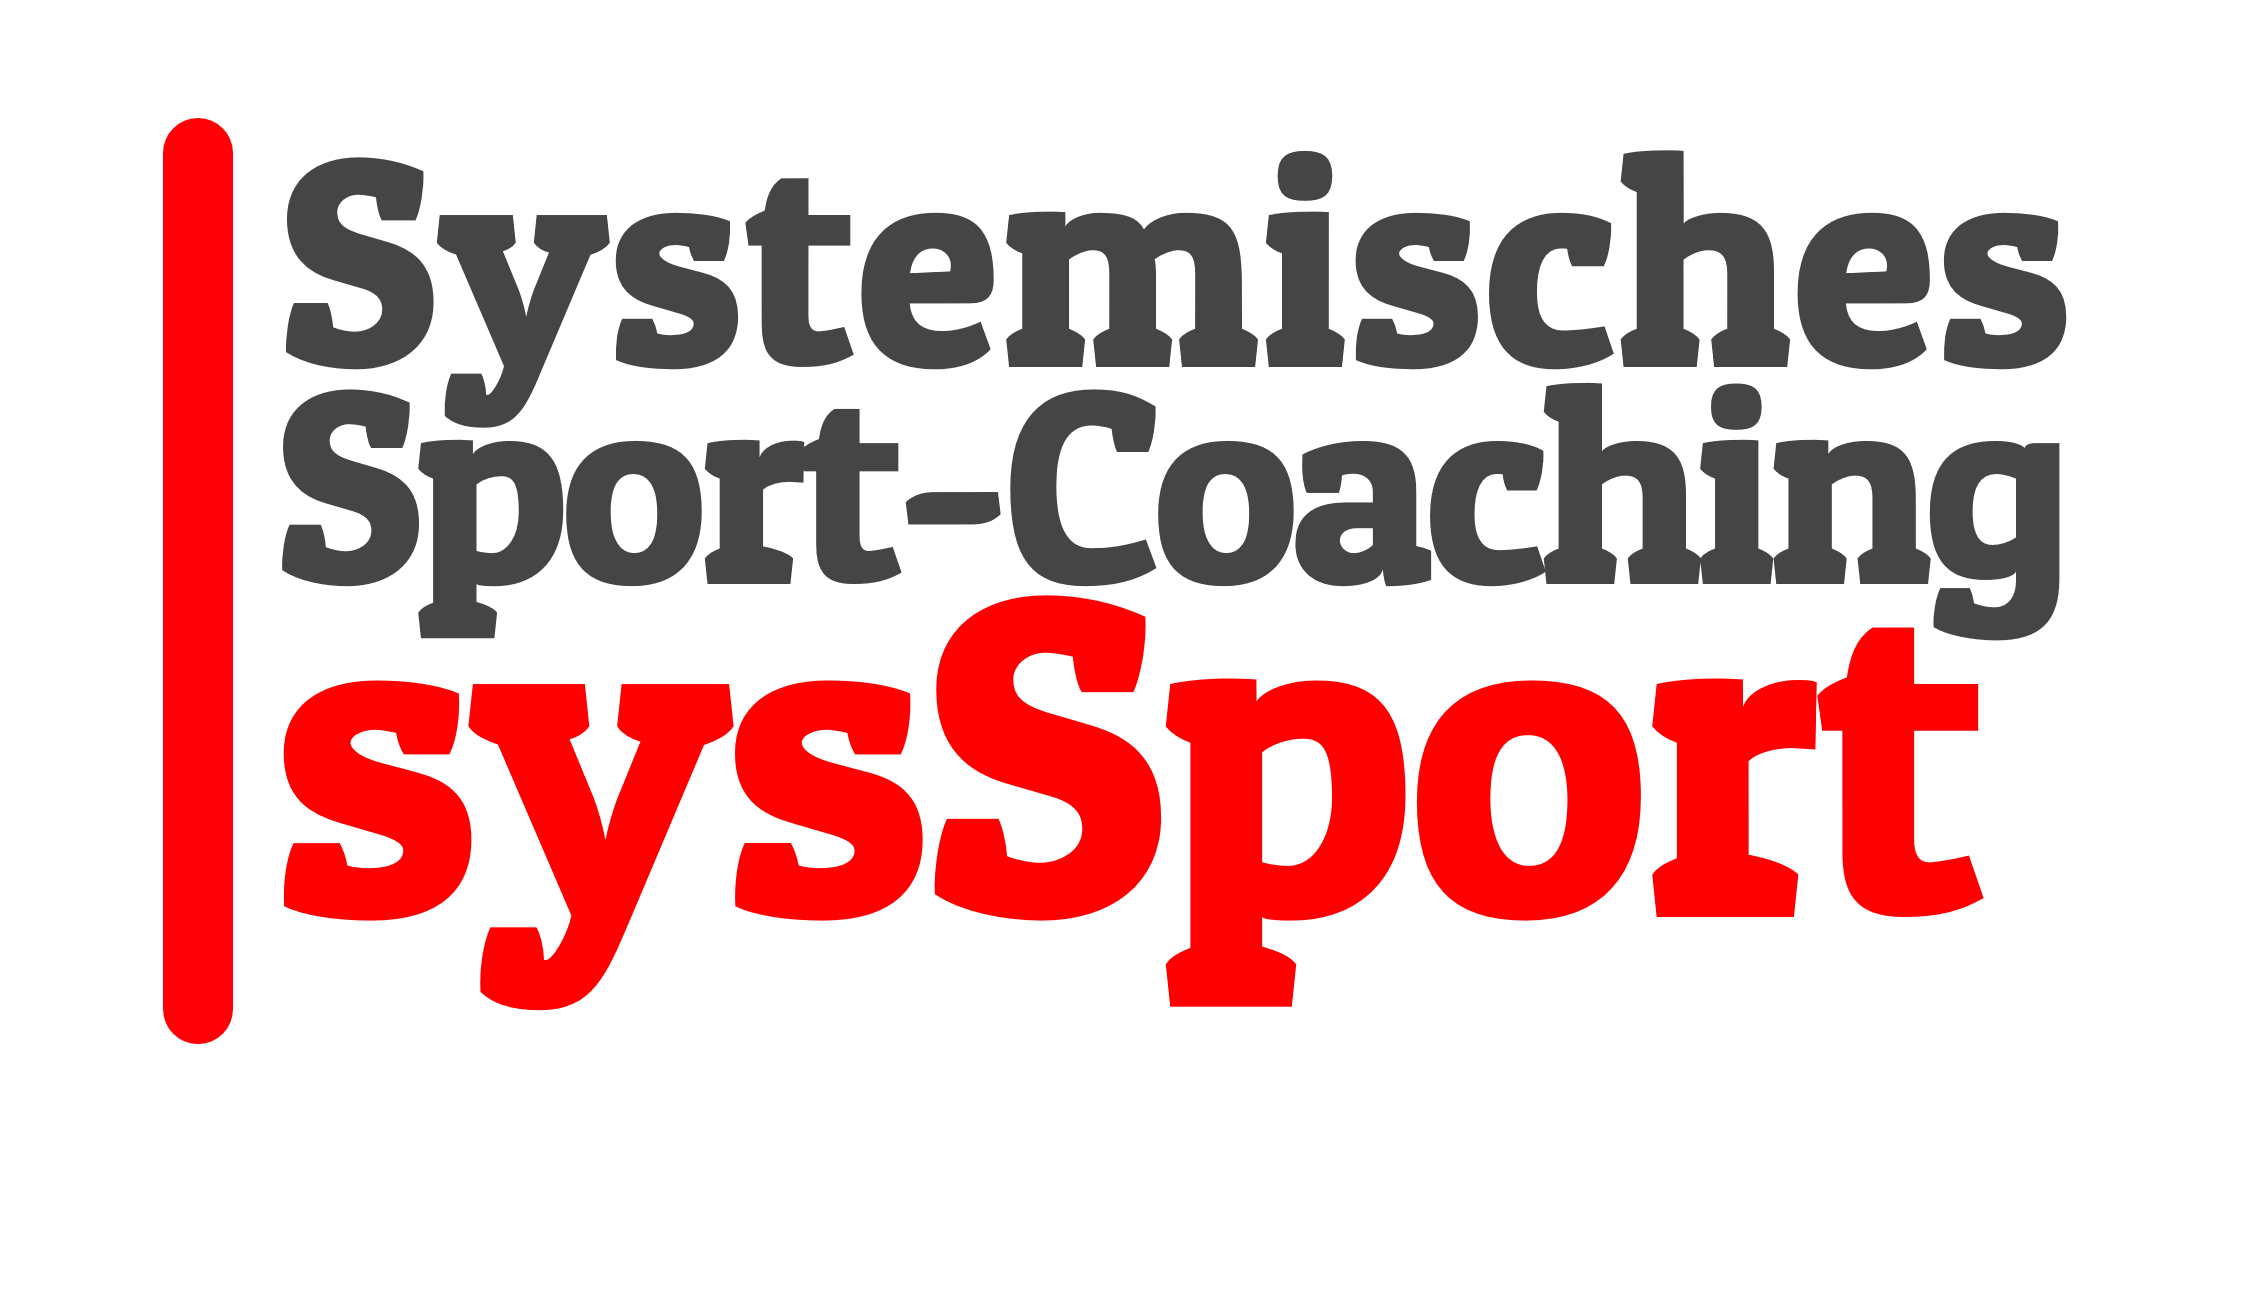 Systemisches Sportcoaching sysSport